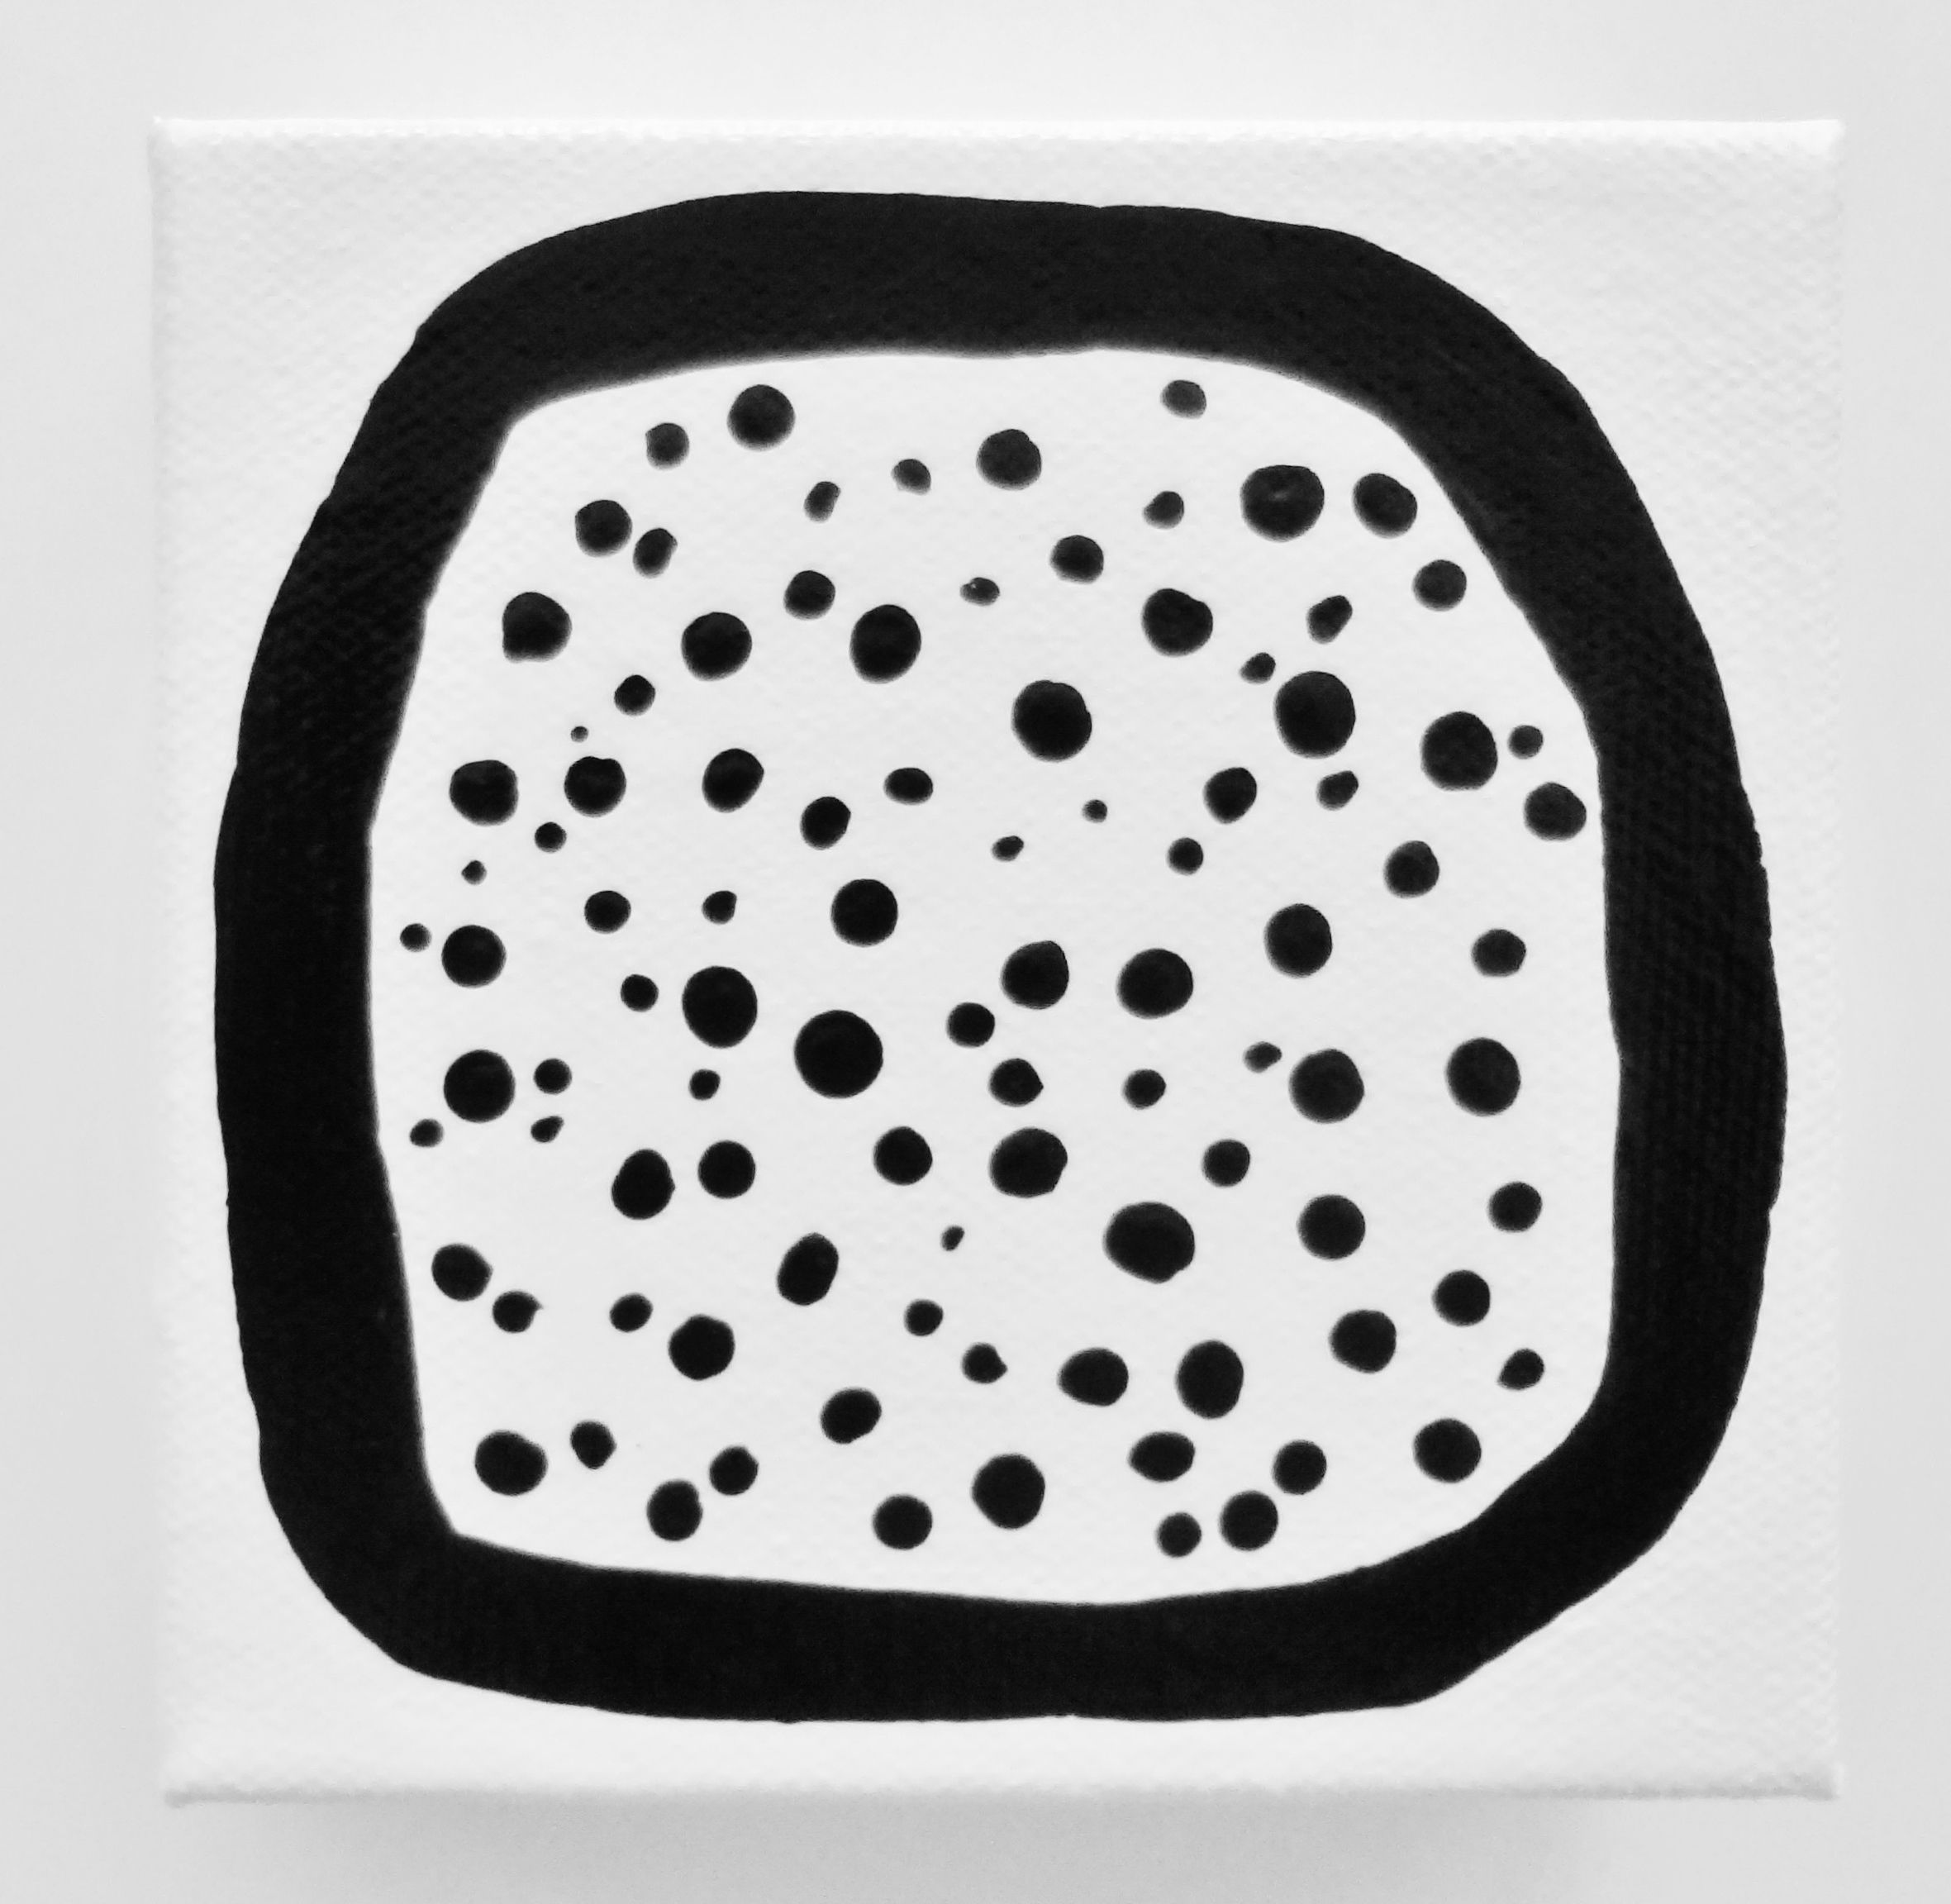 Lynda Black Polkadottydolls  Black And White Polka Dot Circle